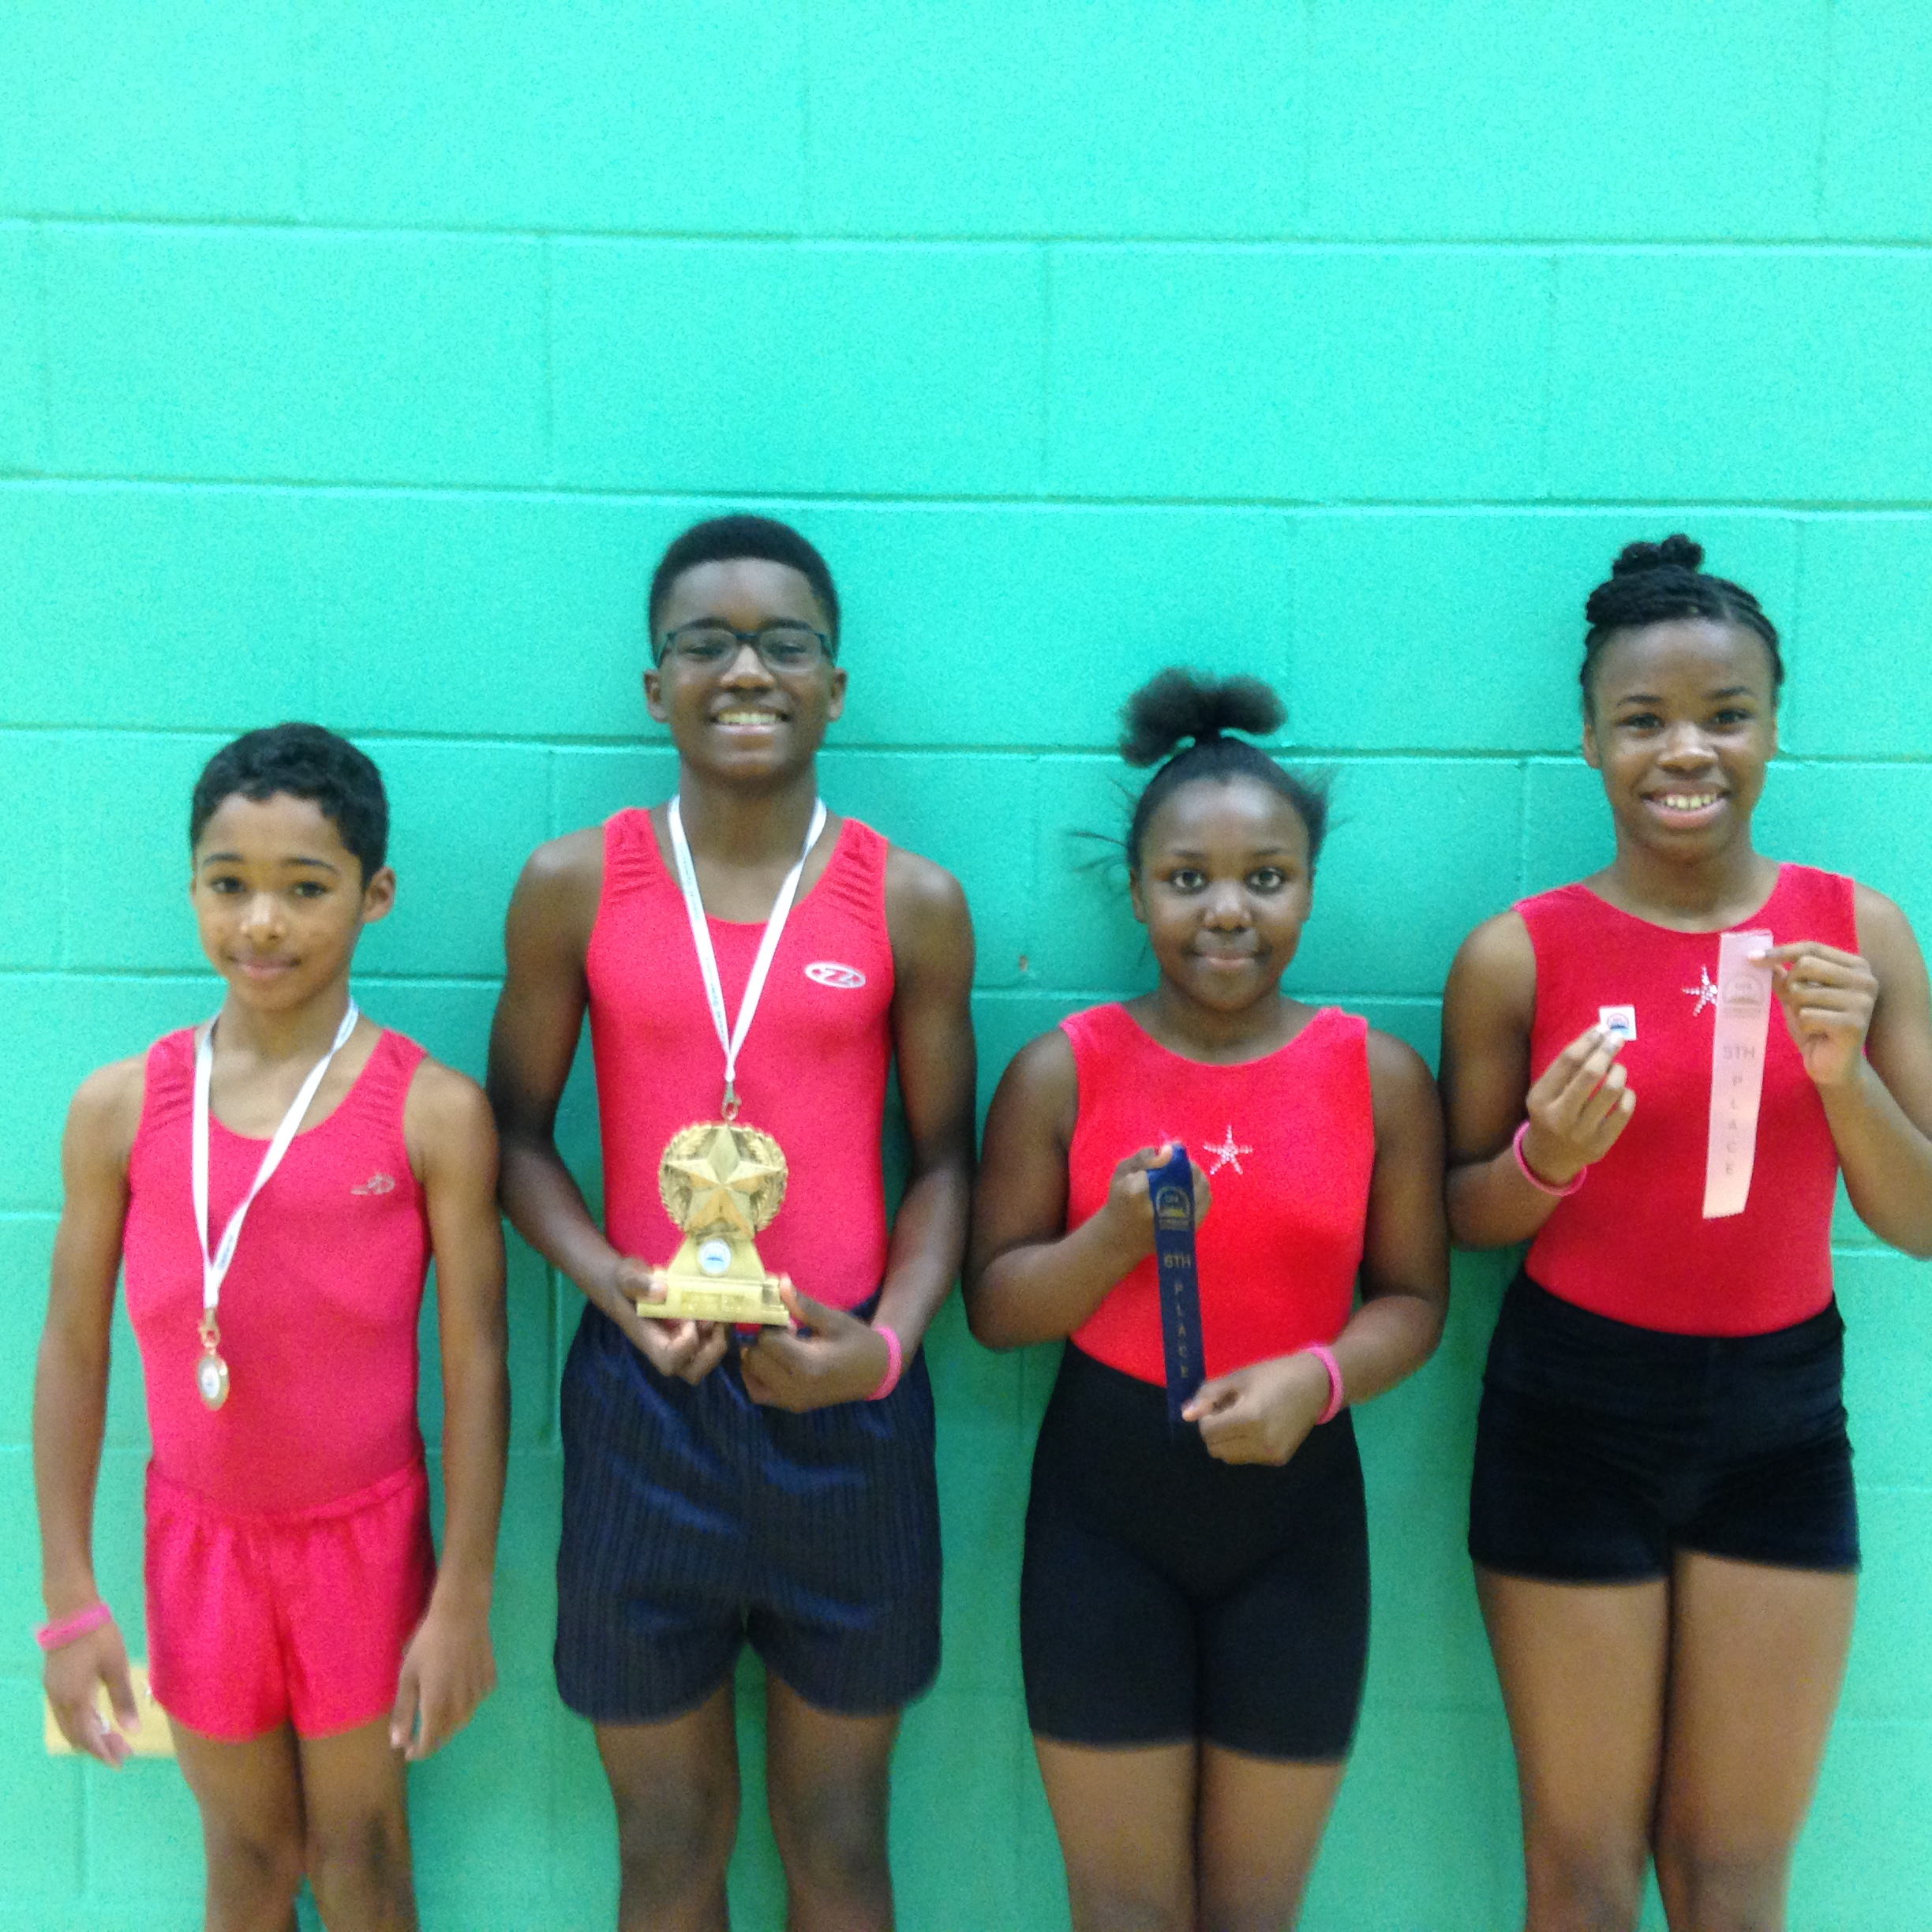 Reuell Nathan Karmae and Nevaeh with medals ribbons trophies and pins.JPG